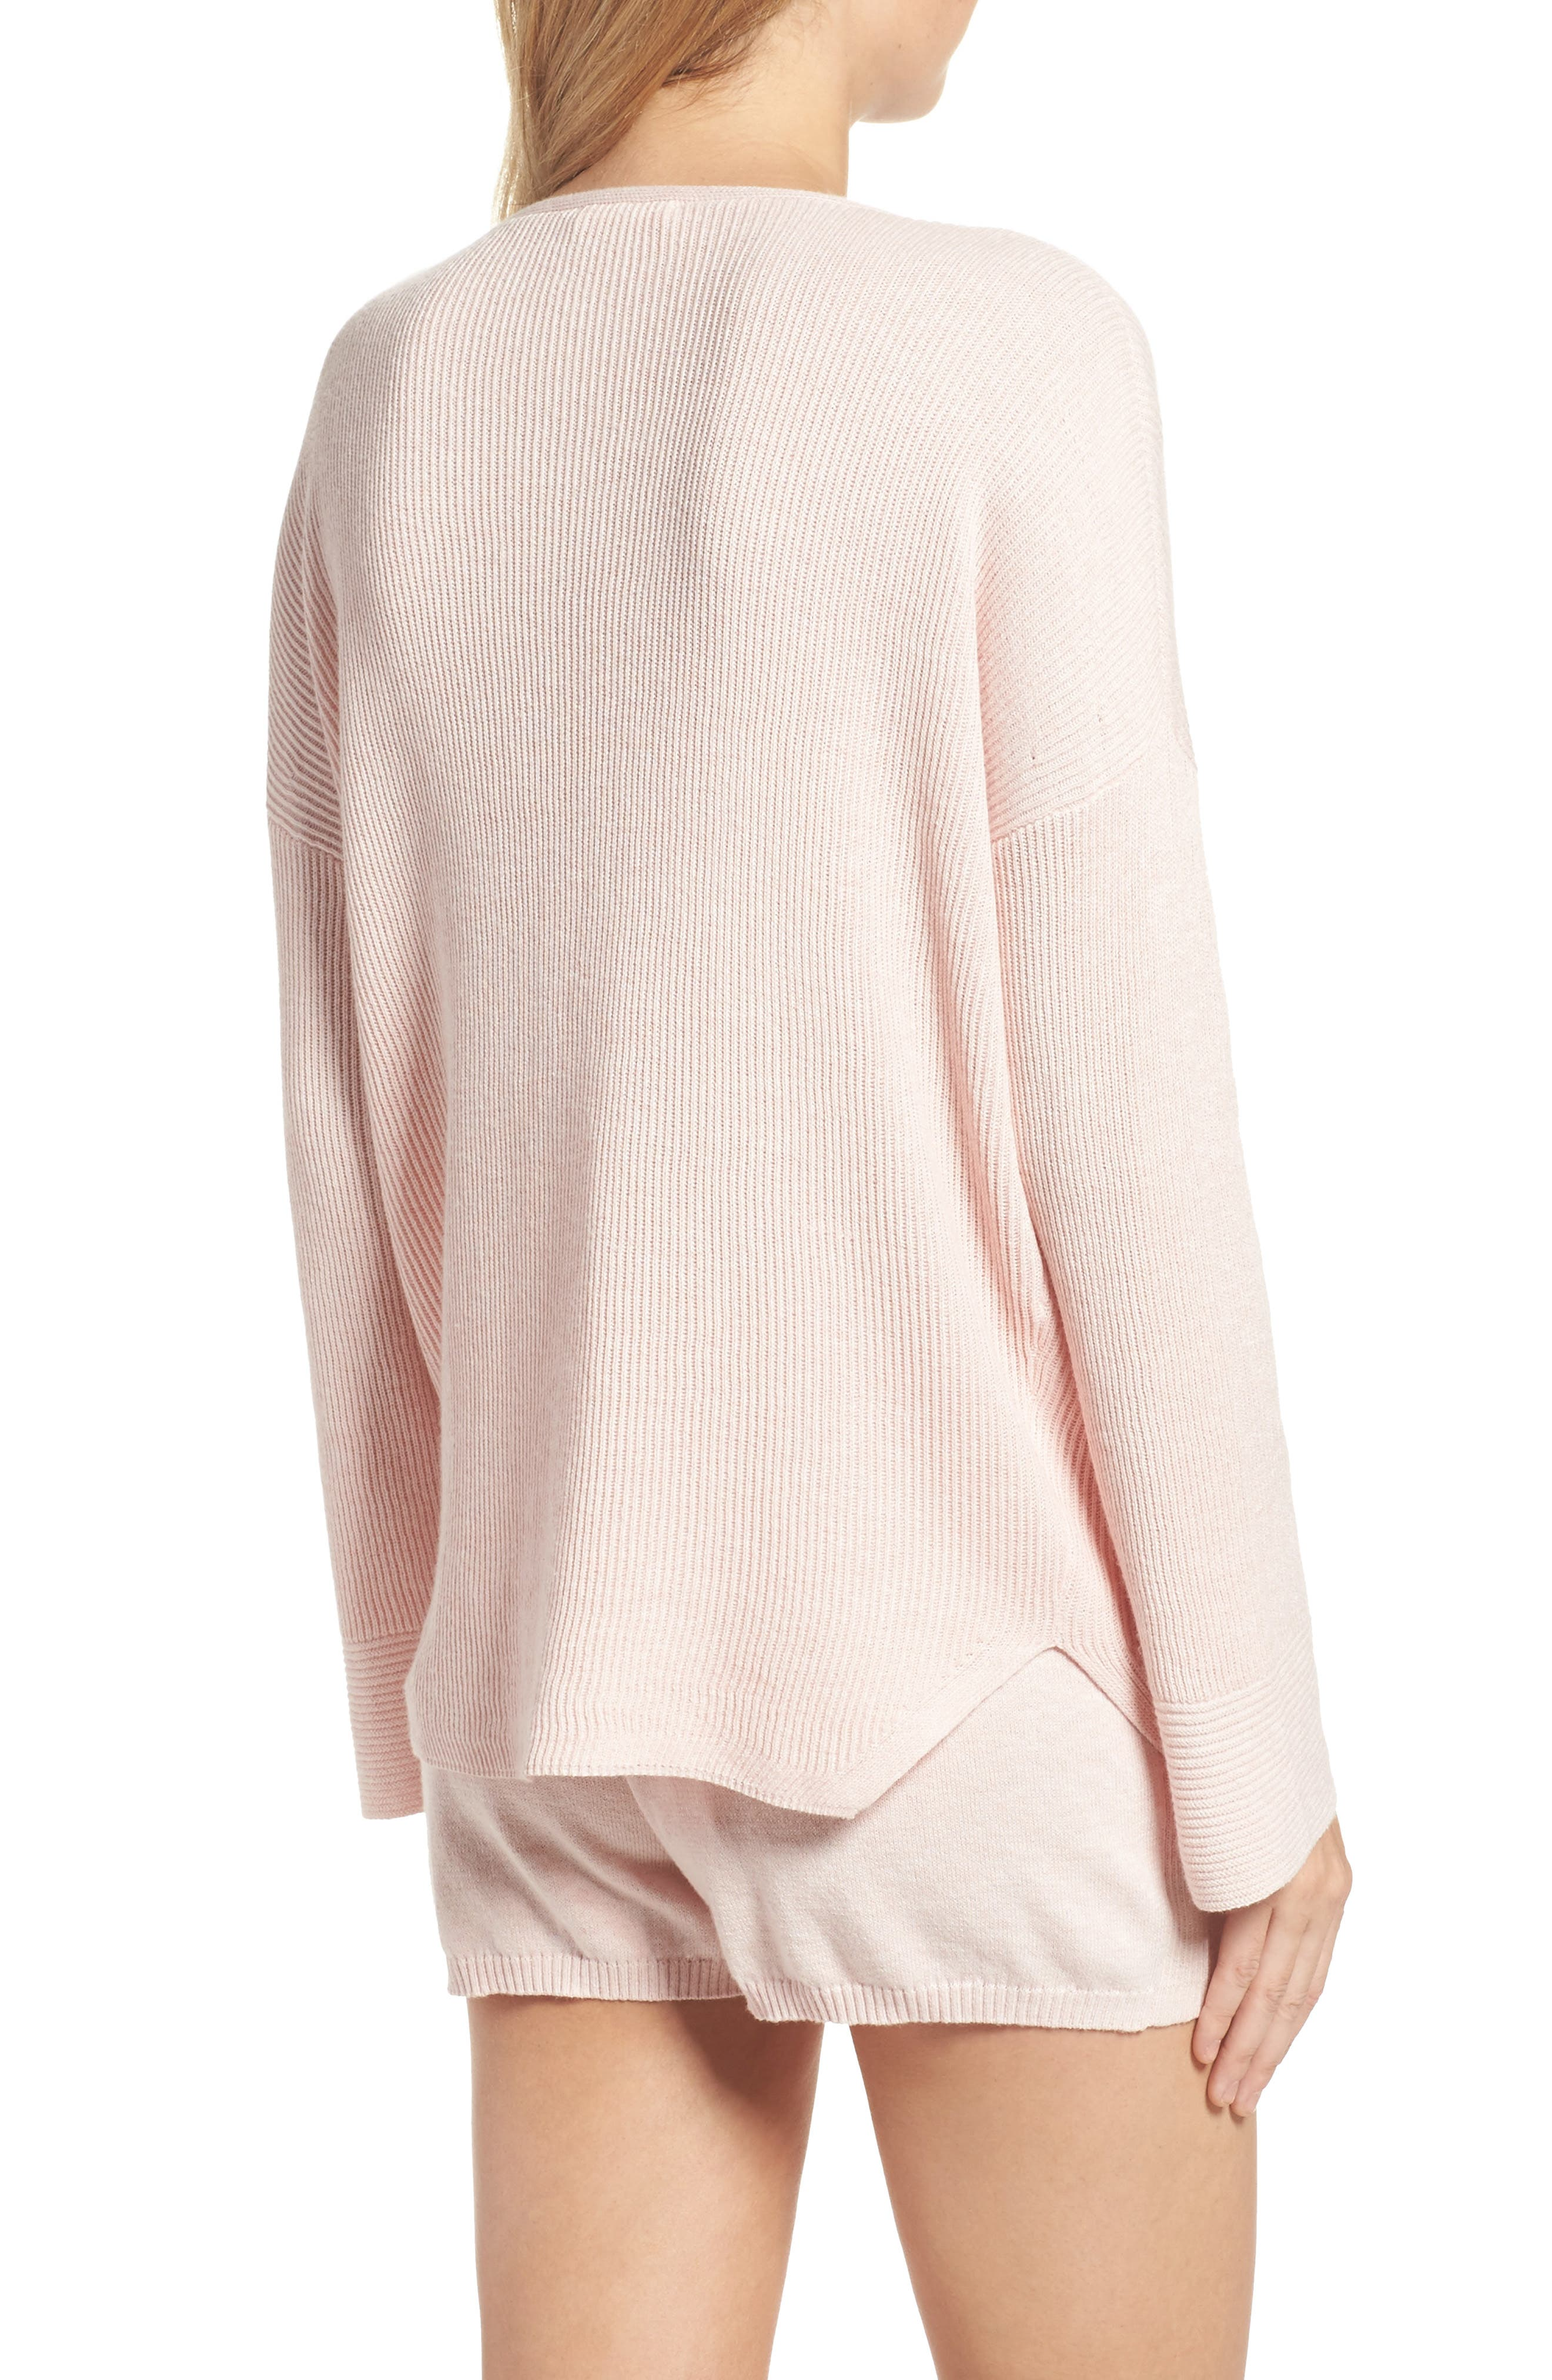 Veronica Lounge Pullover,                             Alternate thumbnail 4, color,